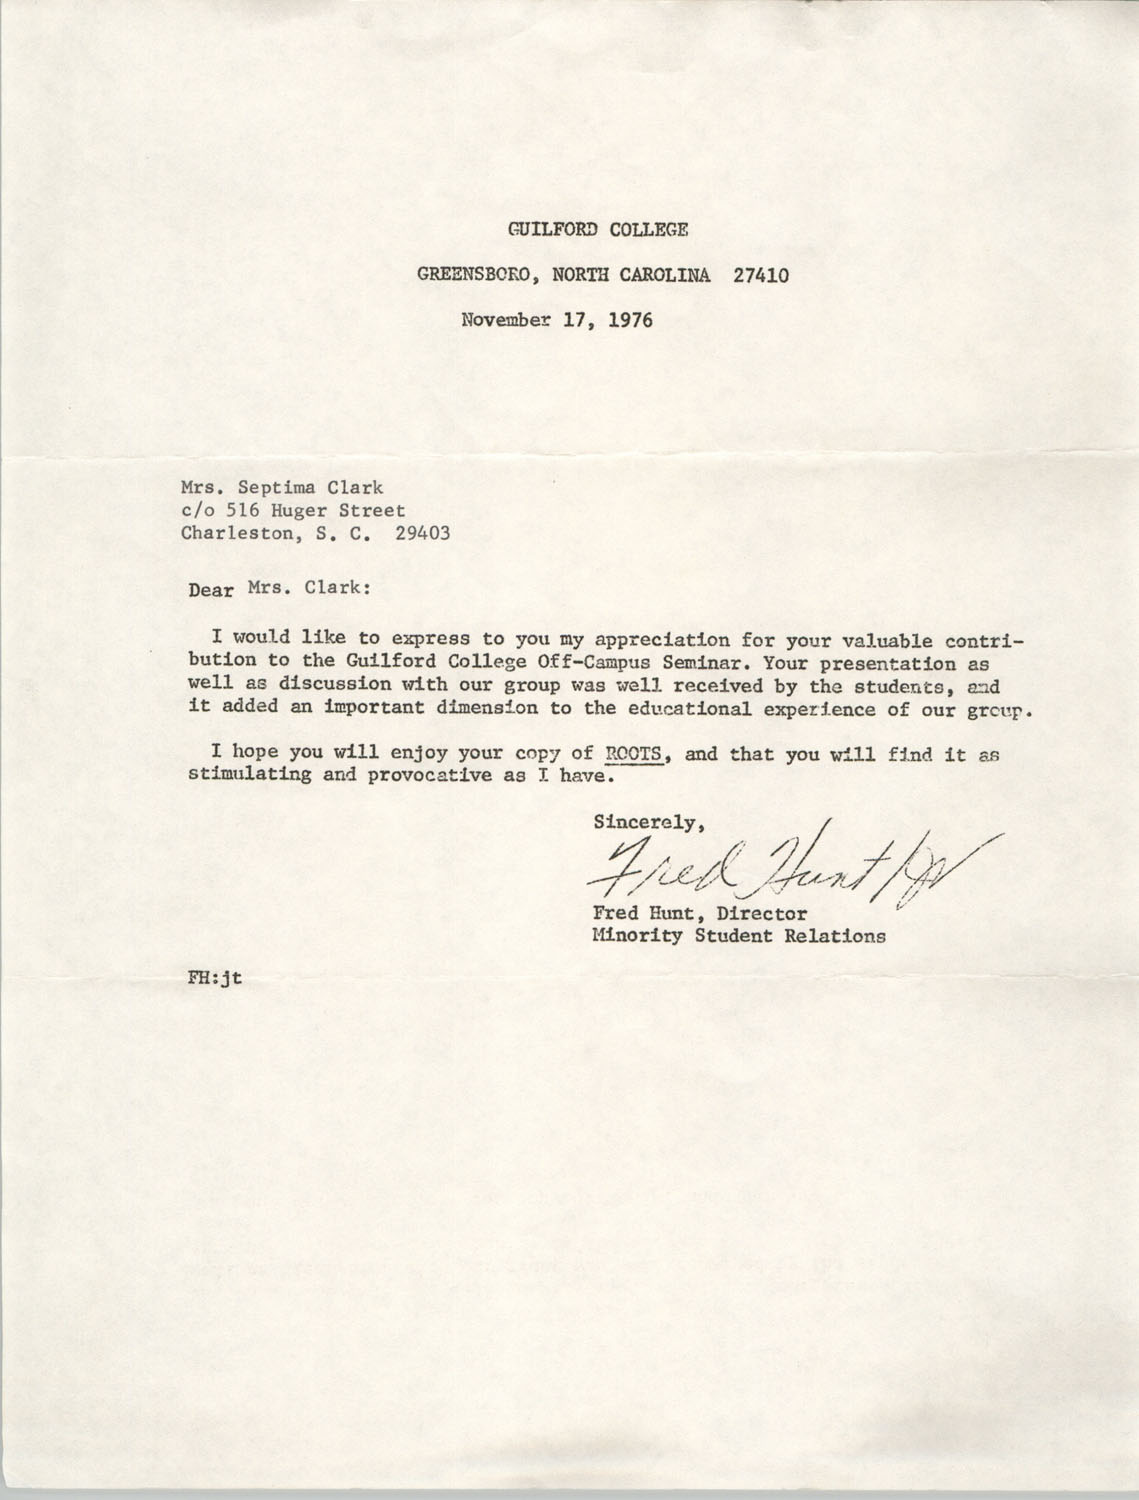 Letter from Fred Hunt to Septima P. Clark, November 17, 1976